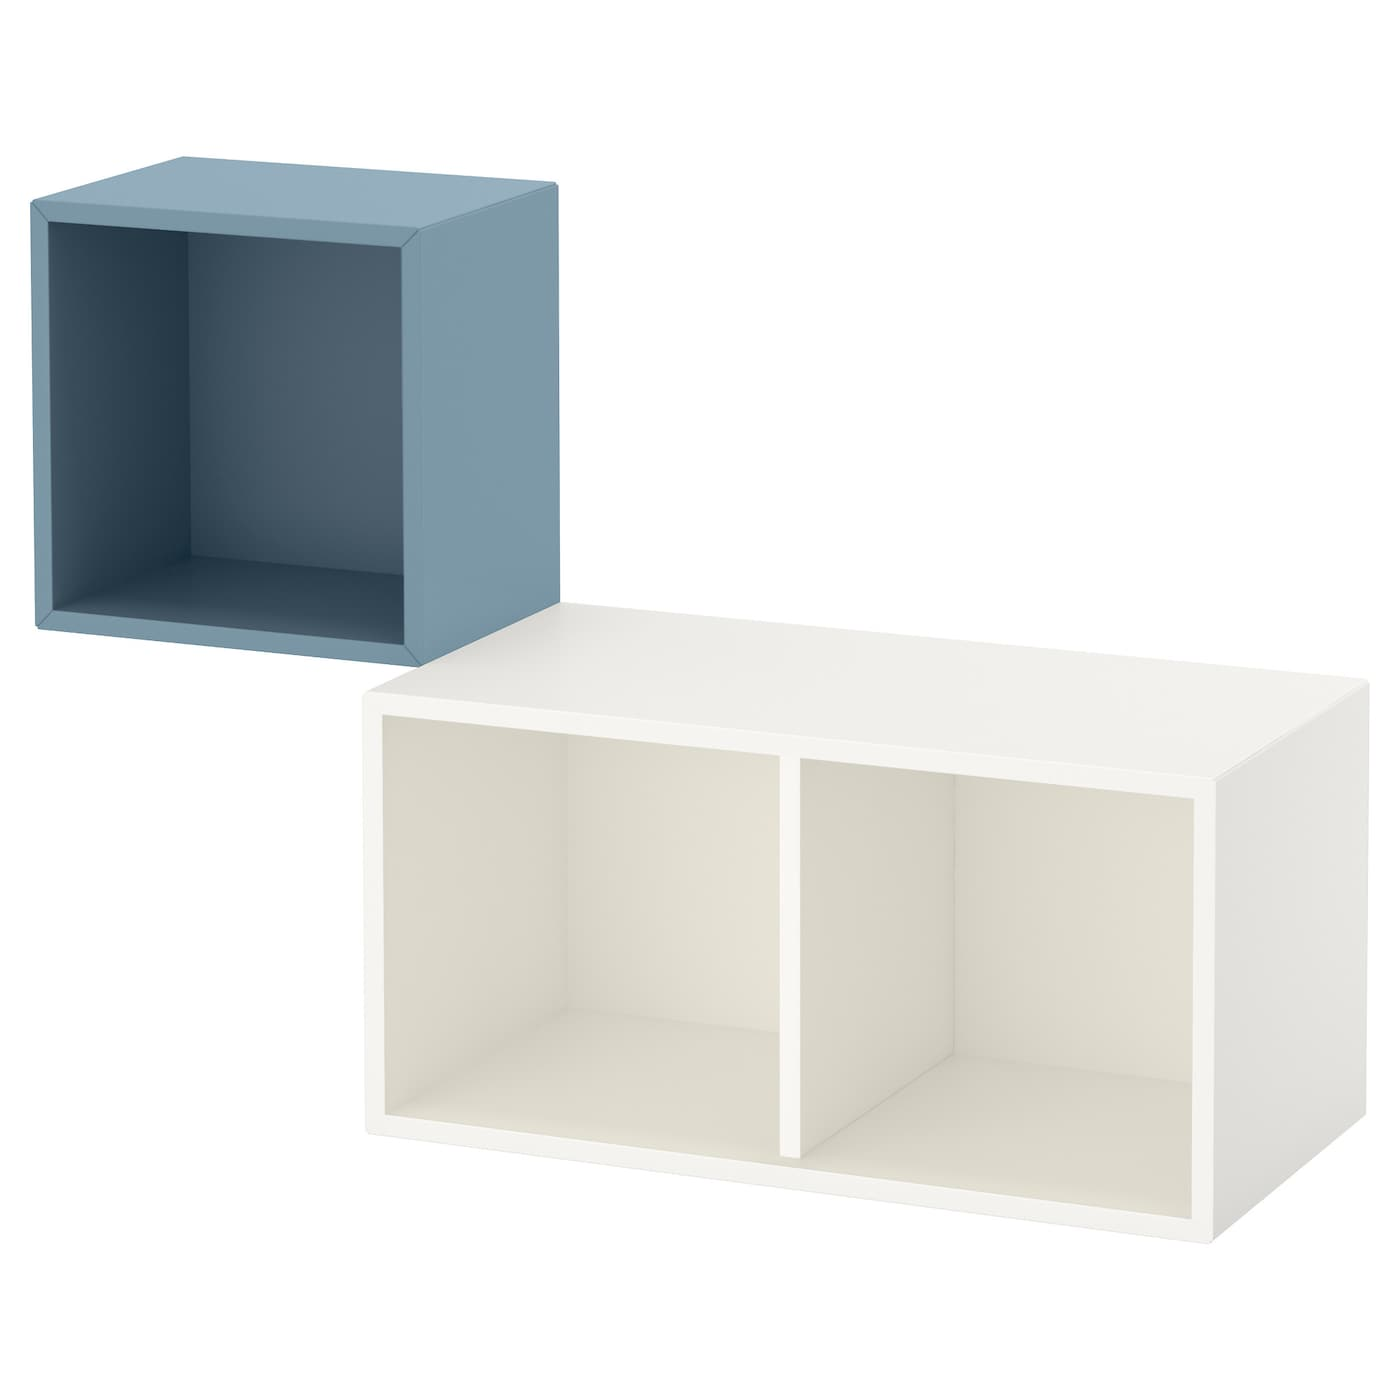 Eket wall mounted cabinet combination light blue white 105x35x70 cm ikea - Ikea rangement etagere ...